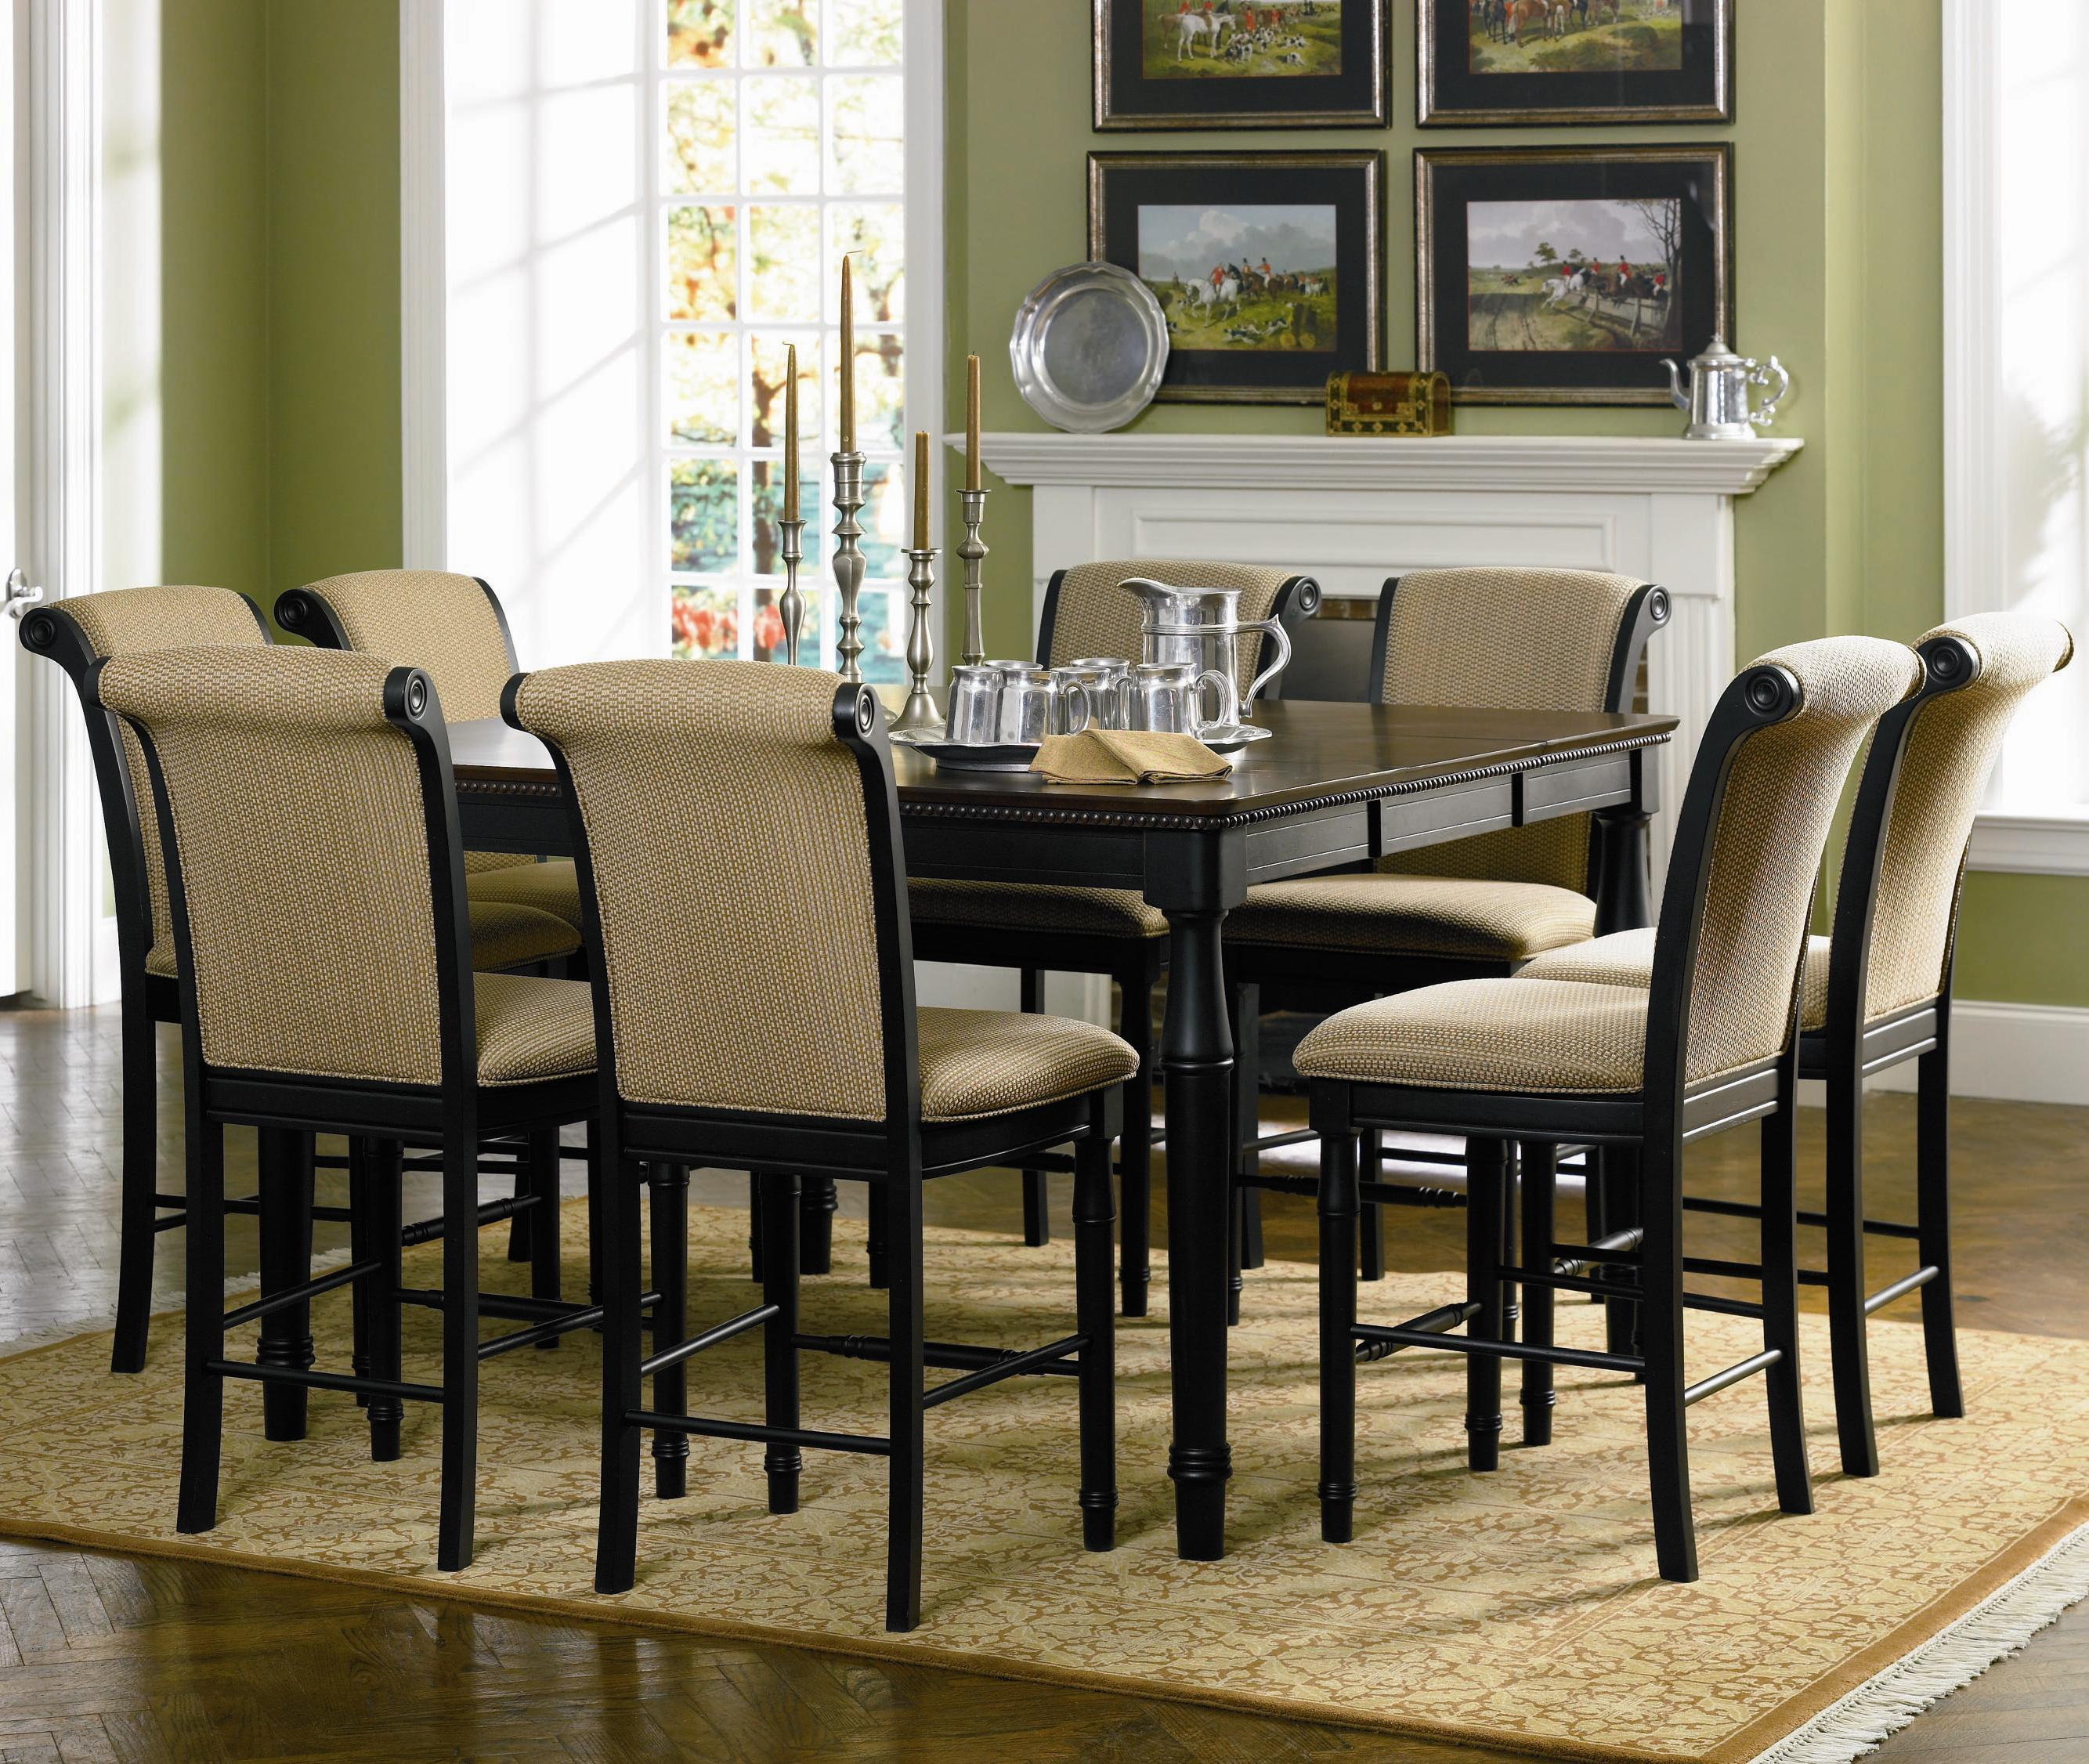 Coaster Cabrillo Counter Height Dining Table With Leaf   Value City  Furniture   Pub Tables